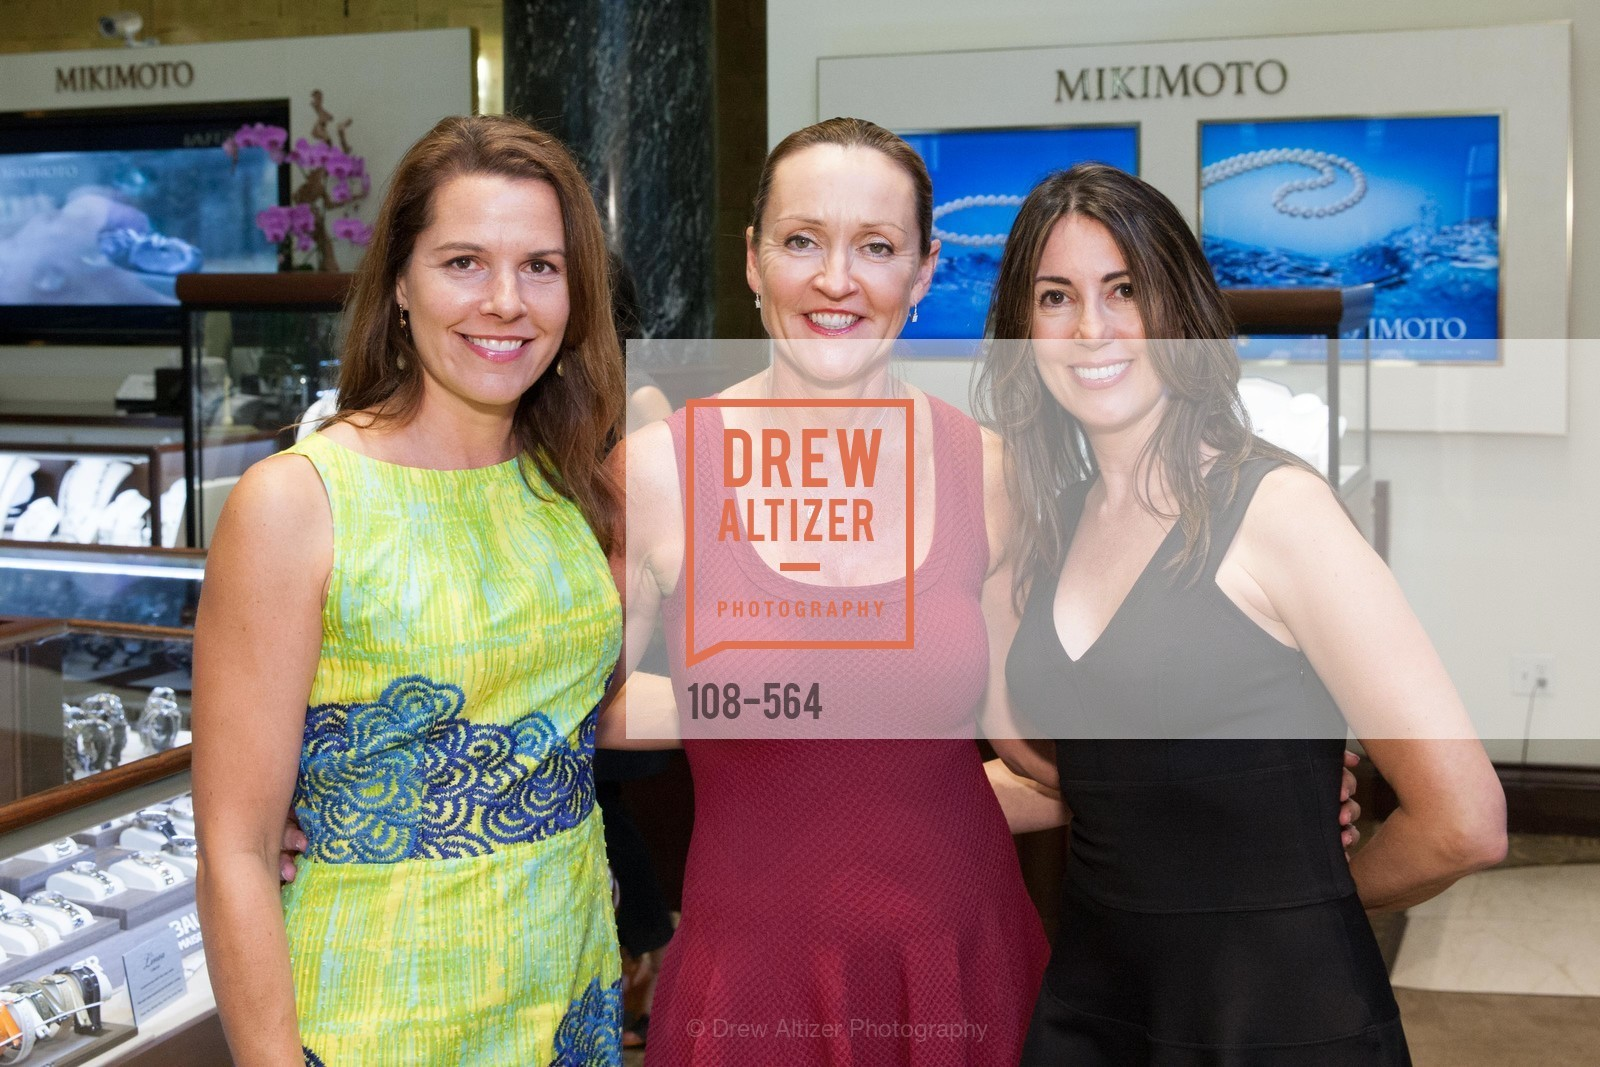 Kristin Sorensen, Siobhan Rigney, Lauren Ferraro, SHREVE & CO. Hosts AMERICAN CANCER SOCIETY BENEFIT, US, September 10th, 2014,Drew Altizer, Drew Altizer Photography, full-service agency, private events, San Francisco photographer, photographer california